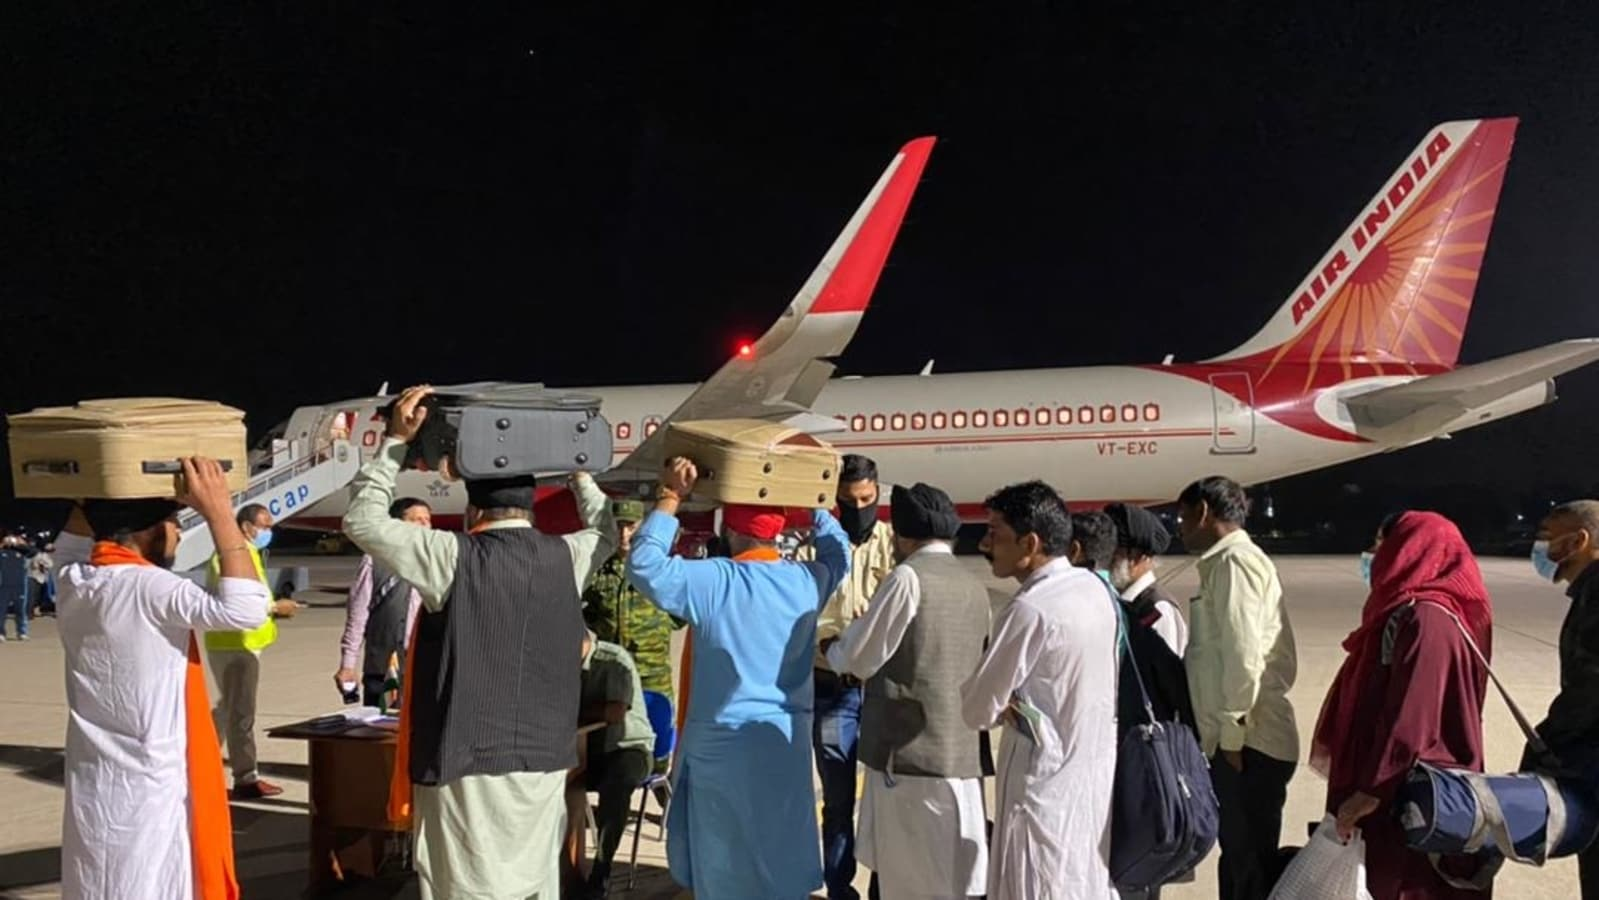 Air India flight with 78 people evacuated from Afghanistan lands in Delhi |  Latest News India - Hindustan Times